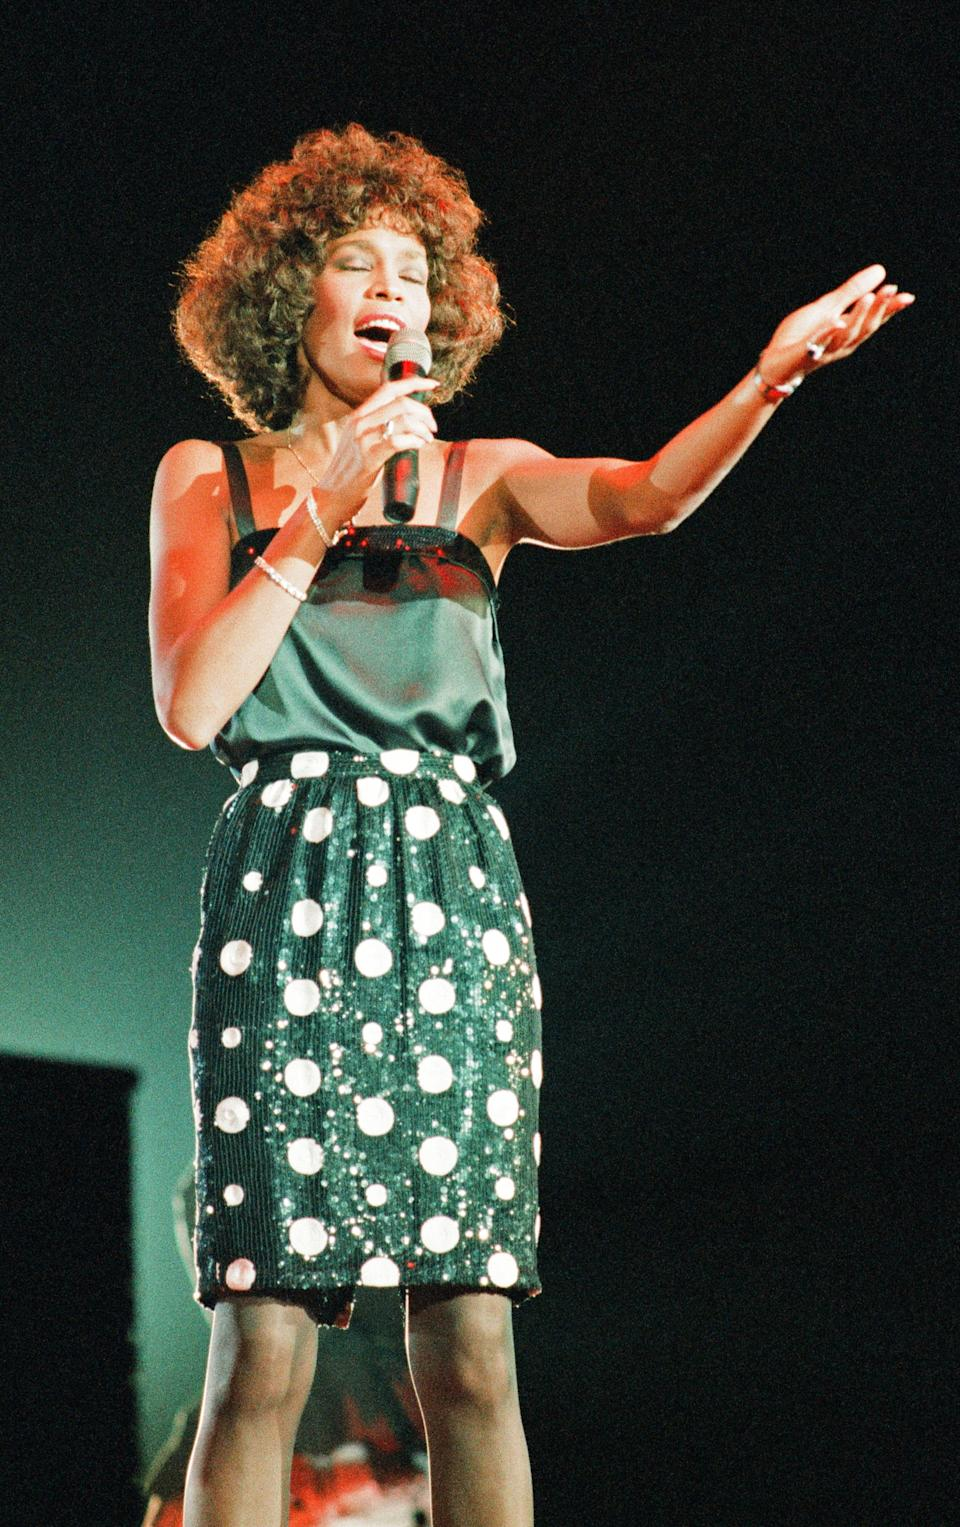 Whitney Houston, seen here performing in 1987, died in 2012. (Photo: Williams/Mirrorpix/Getty Images)